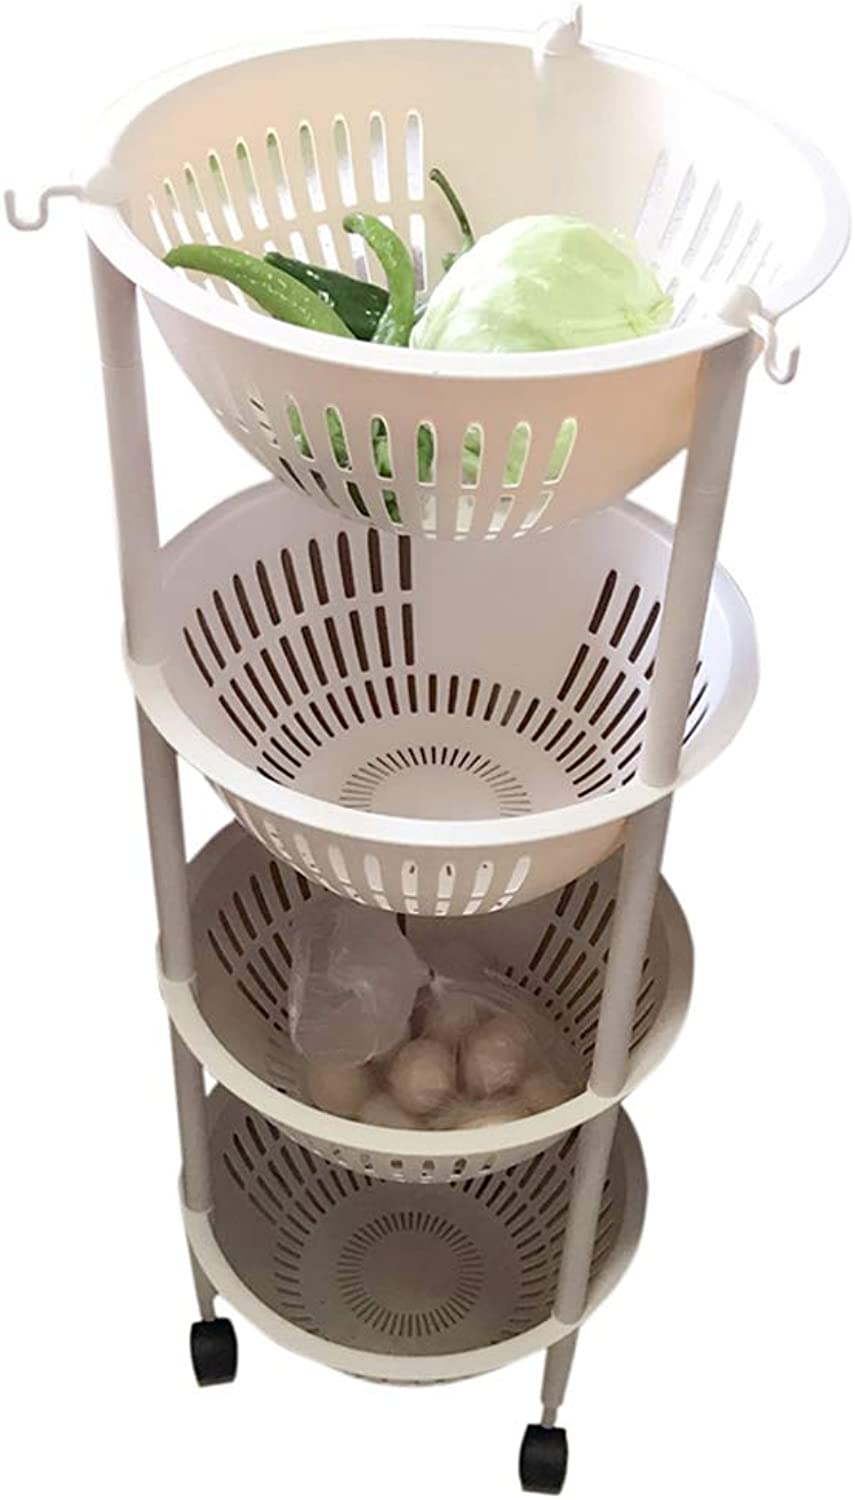 HUYP Beige Large Removable Storage Rack Vegetable Basket Kitchen Bedroom Bathroom Shelf